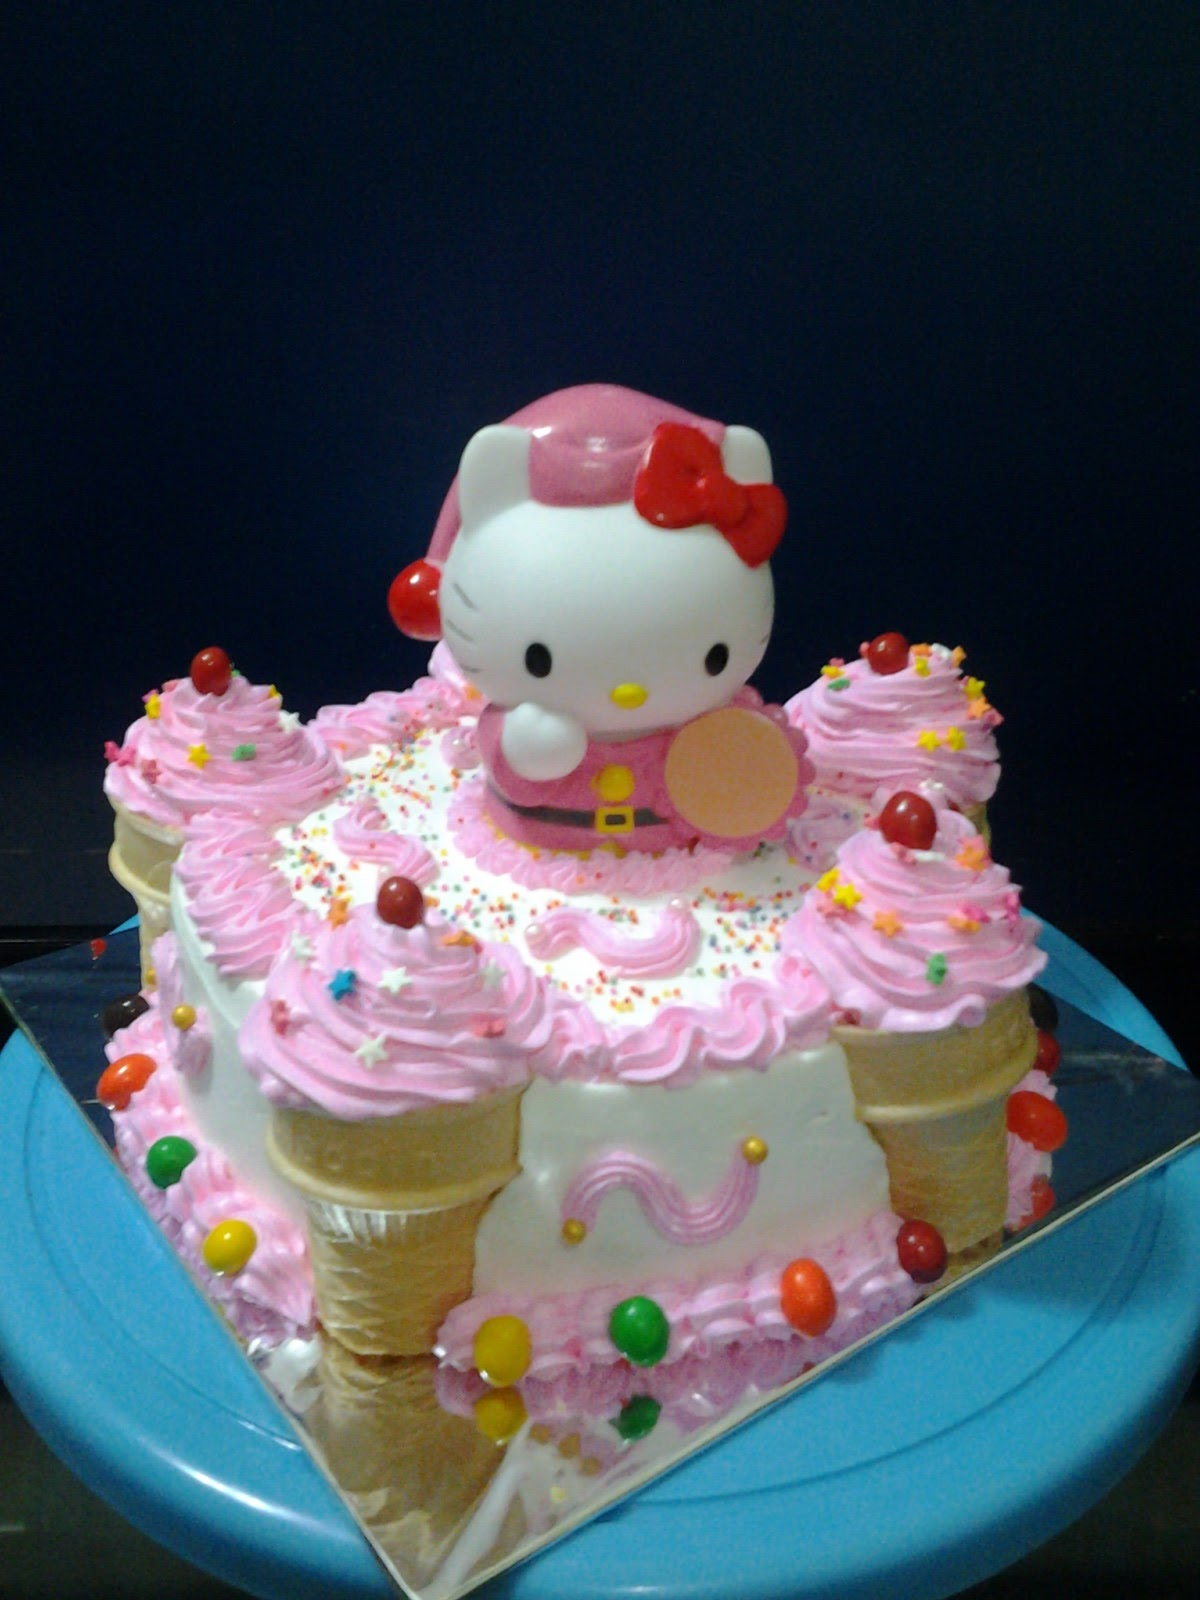 Vies Cakes Japanese Cheese Cake With Hello Kitty And Ice